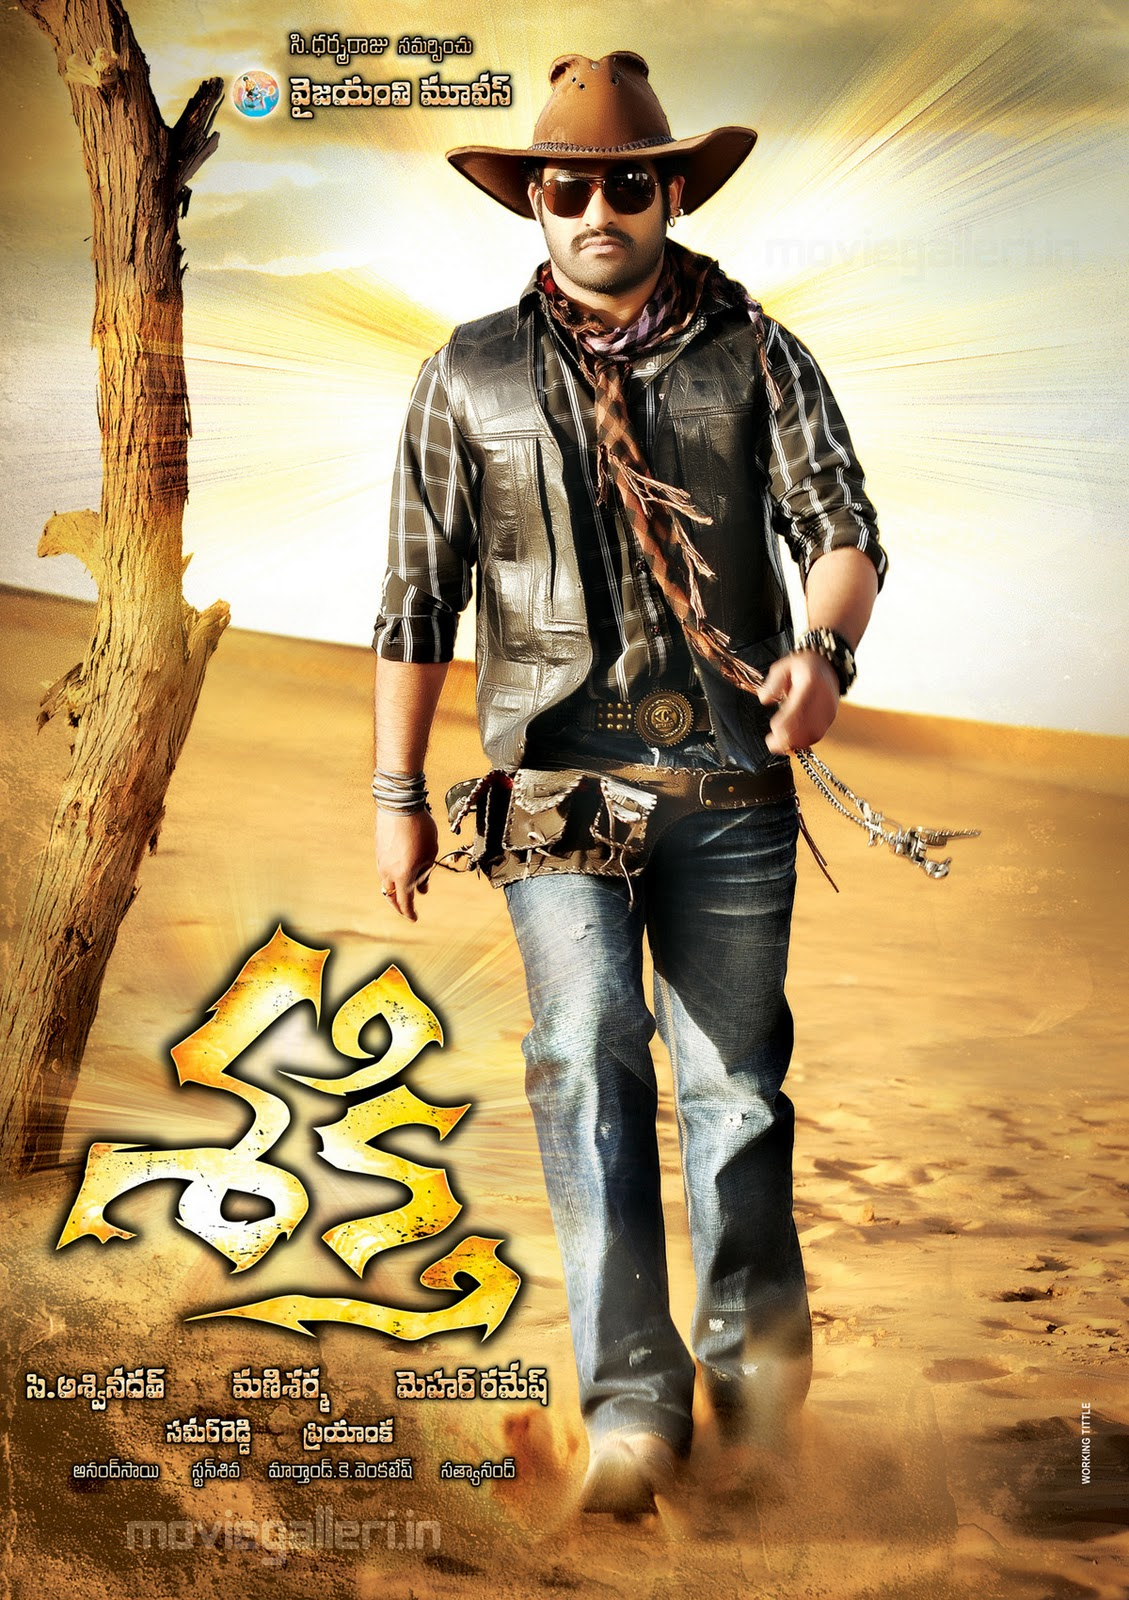 http://3.bp.blogspot.com/-XH2X2dp_Rm4/TVigfUJ6EwI/AAAAAAAAFjo/VoFSwdTOoA8/s1600/jr_ntr_shakti_movie_latest_wallpapers_06.JPG